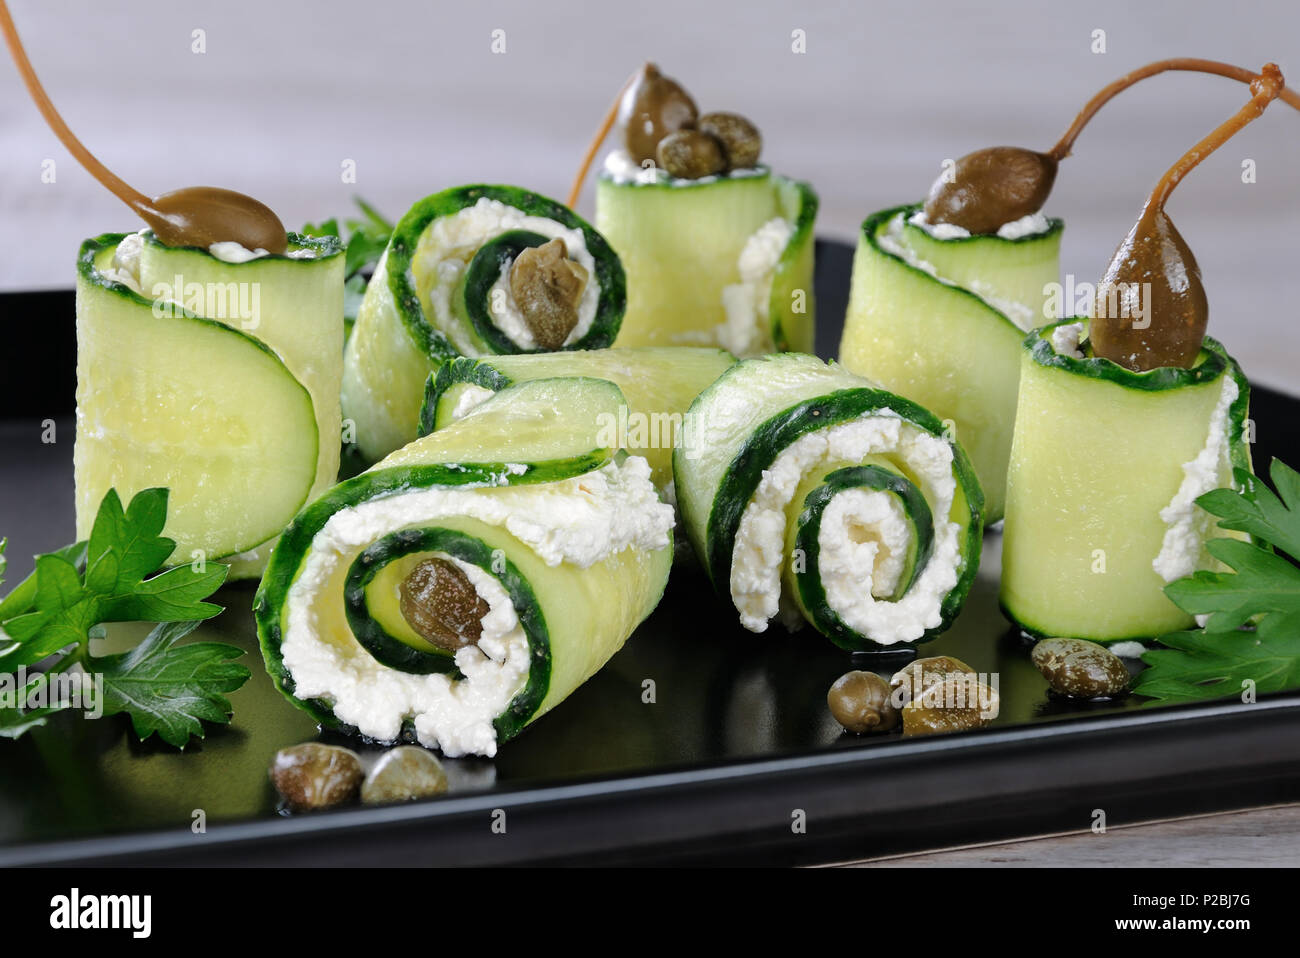 Cucumber rolls with ricotta filling and capers.   These rolls with the size of a bite -is a great option with a low fat content, which serves as a sna - Stock Image